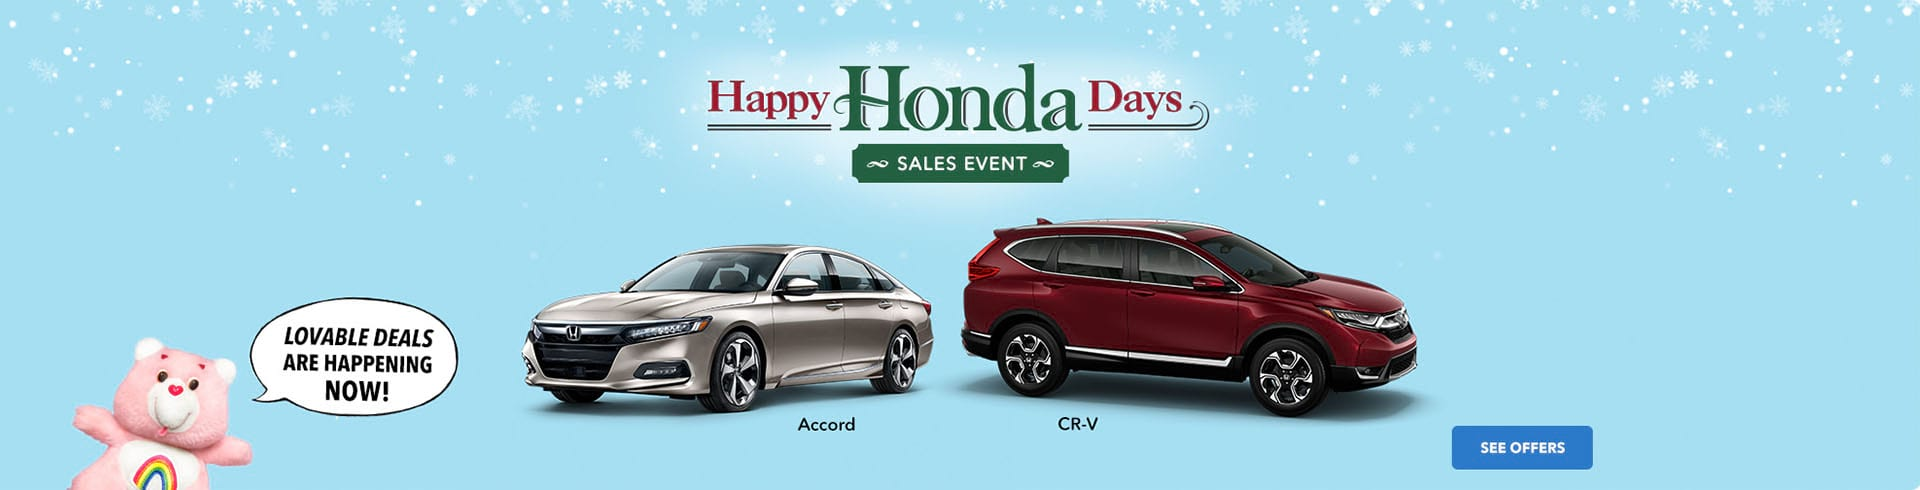 Happy-Honda-Days-2018-1920x490.jpg